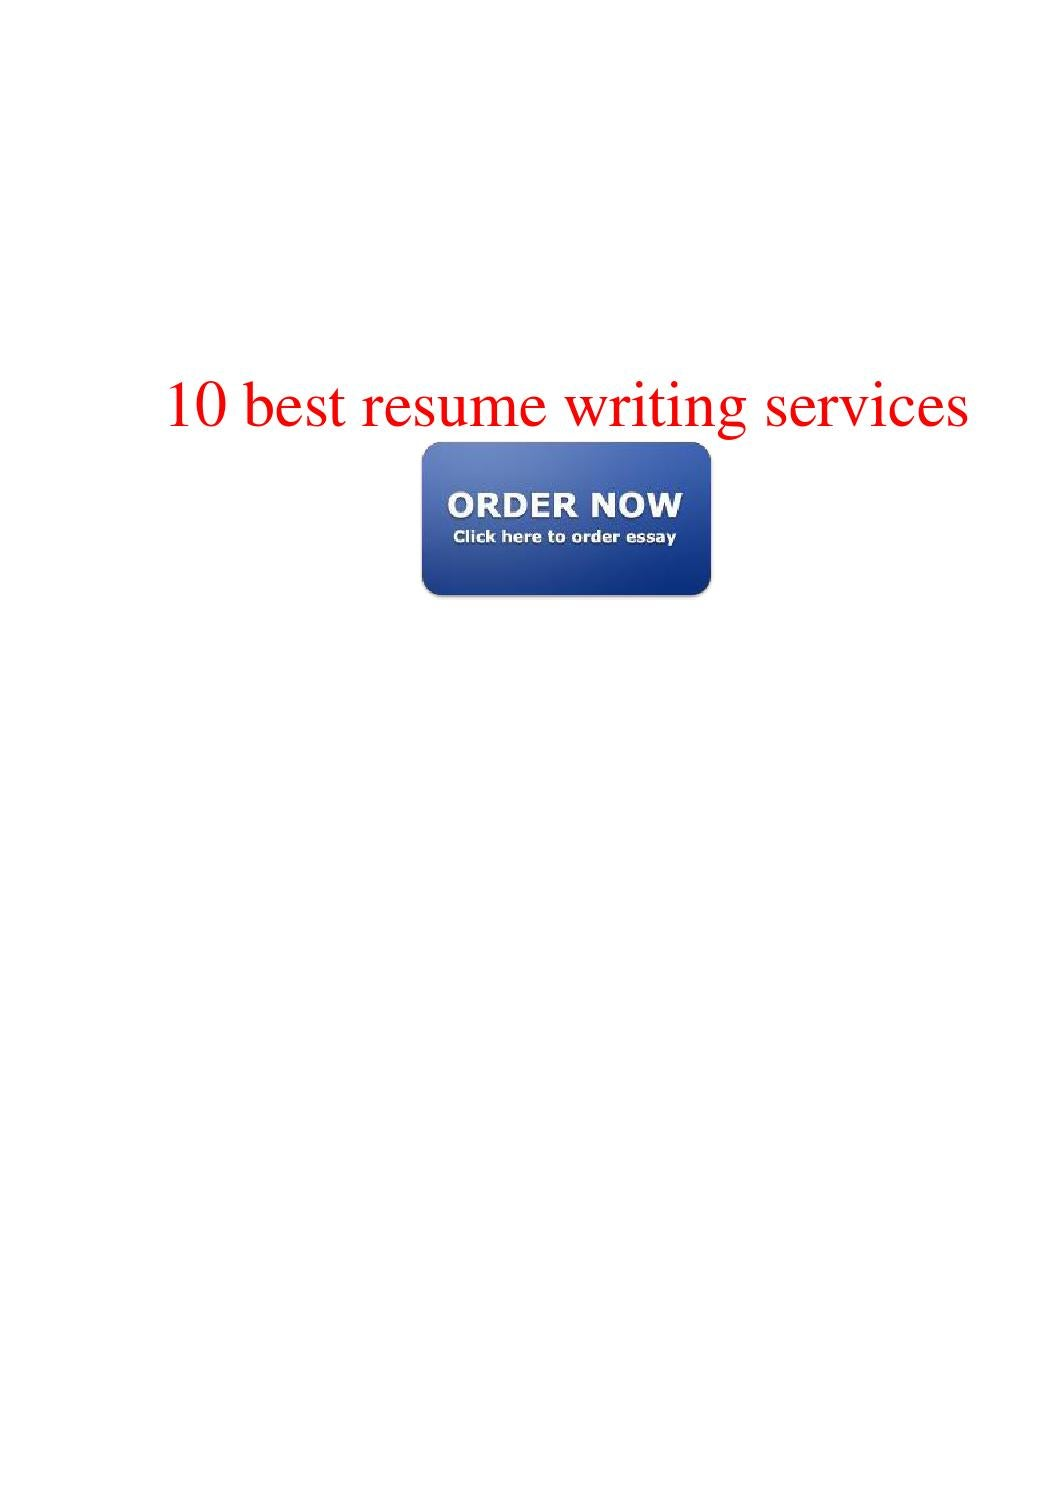 best resume writing services reviews related post of 10 best resume writing services reviews